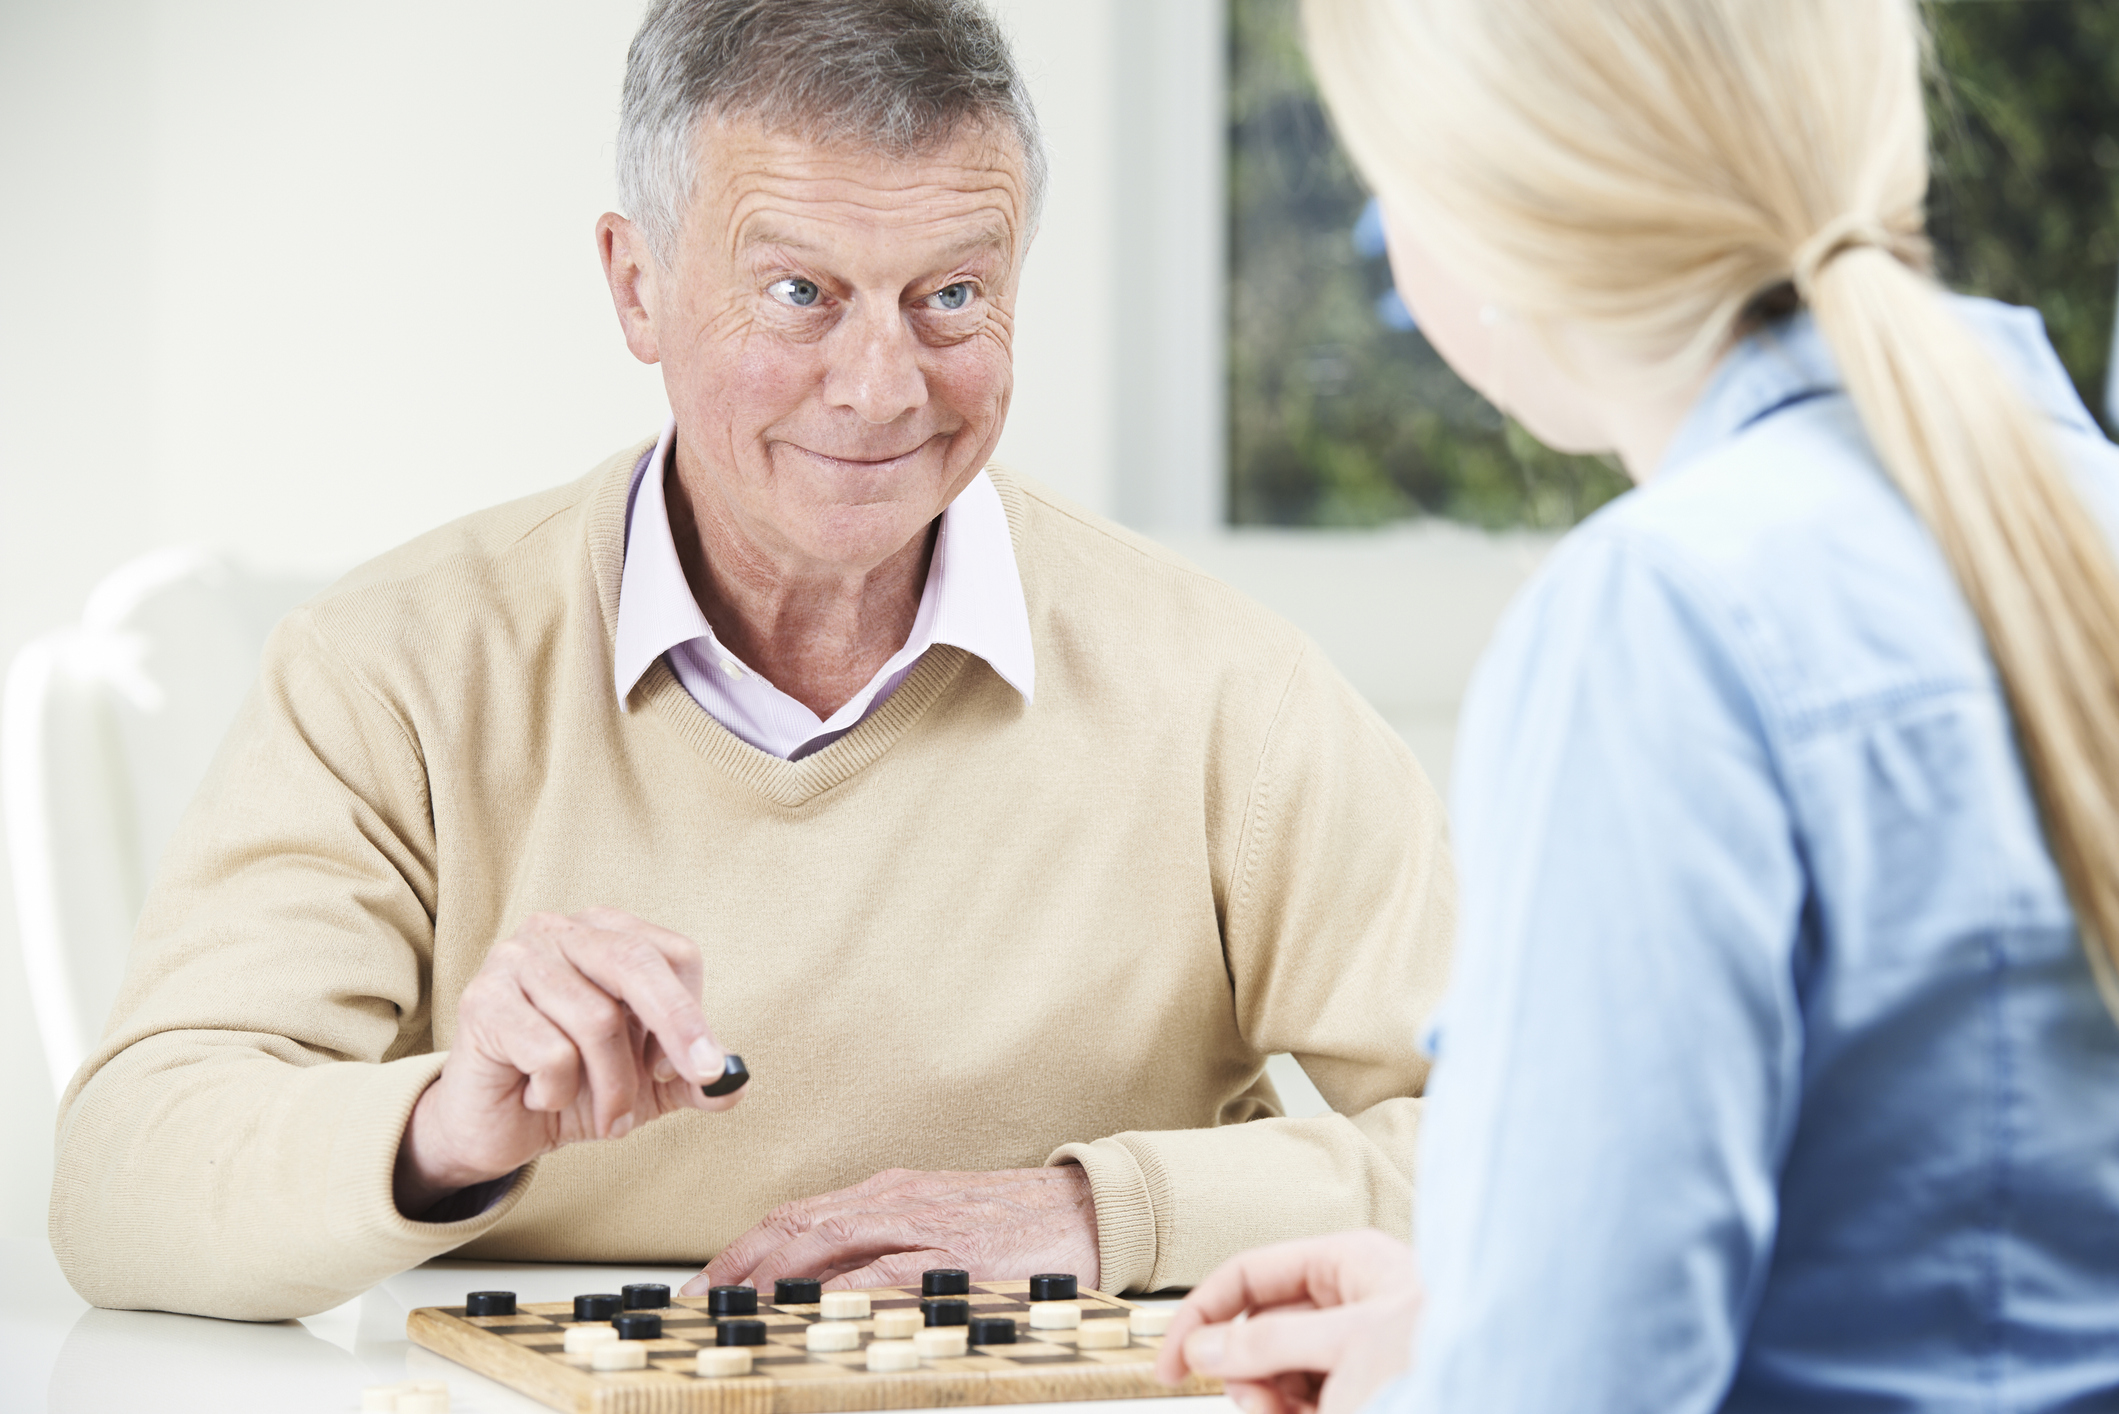 Checkers and other indoor activities can help pass the time